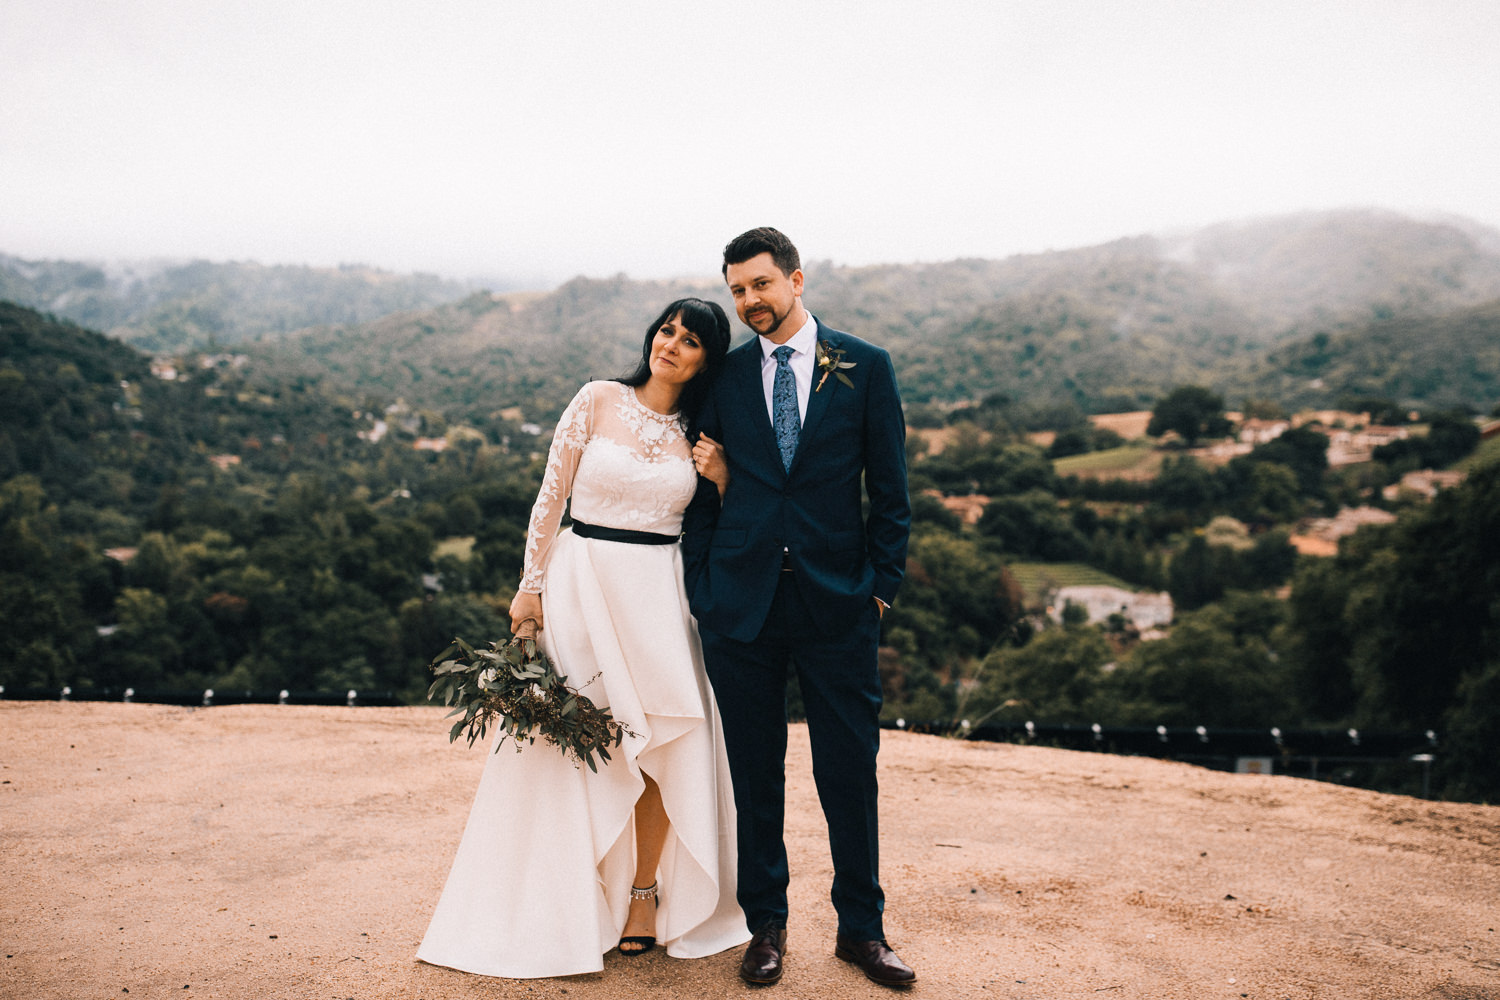 2019_05_ 182019.05.19 Lisa + Eddie South Bay Wedding Blog Photos Edited For Web 0104.jpg